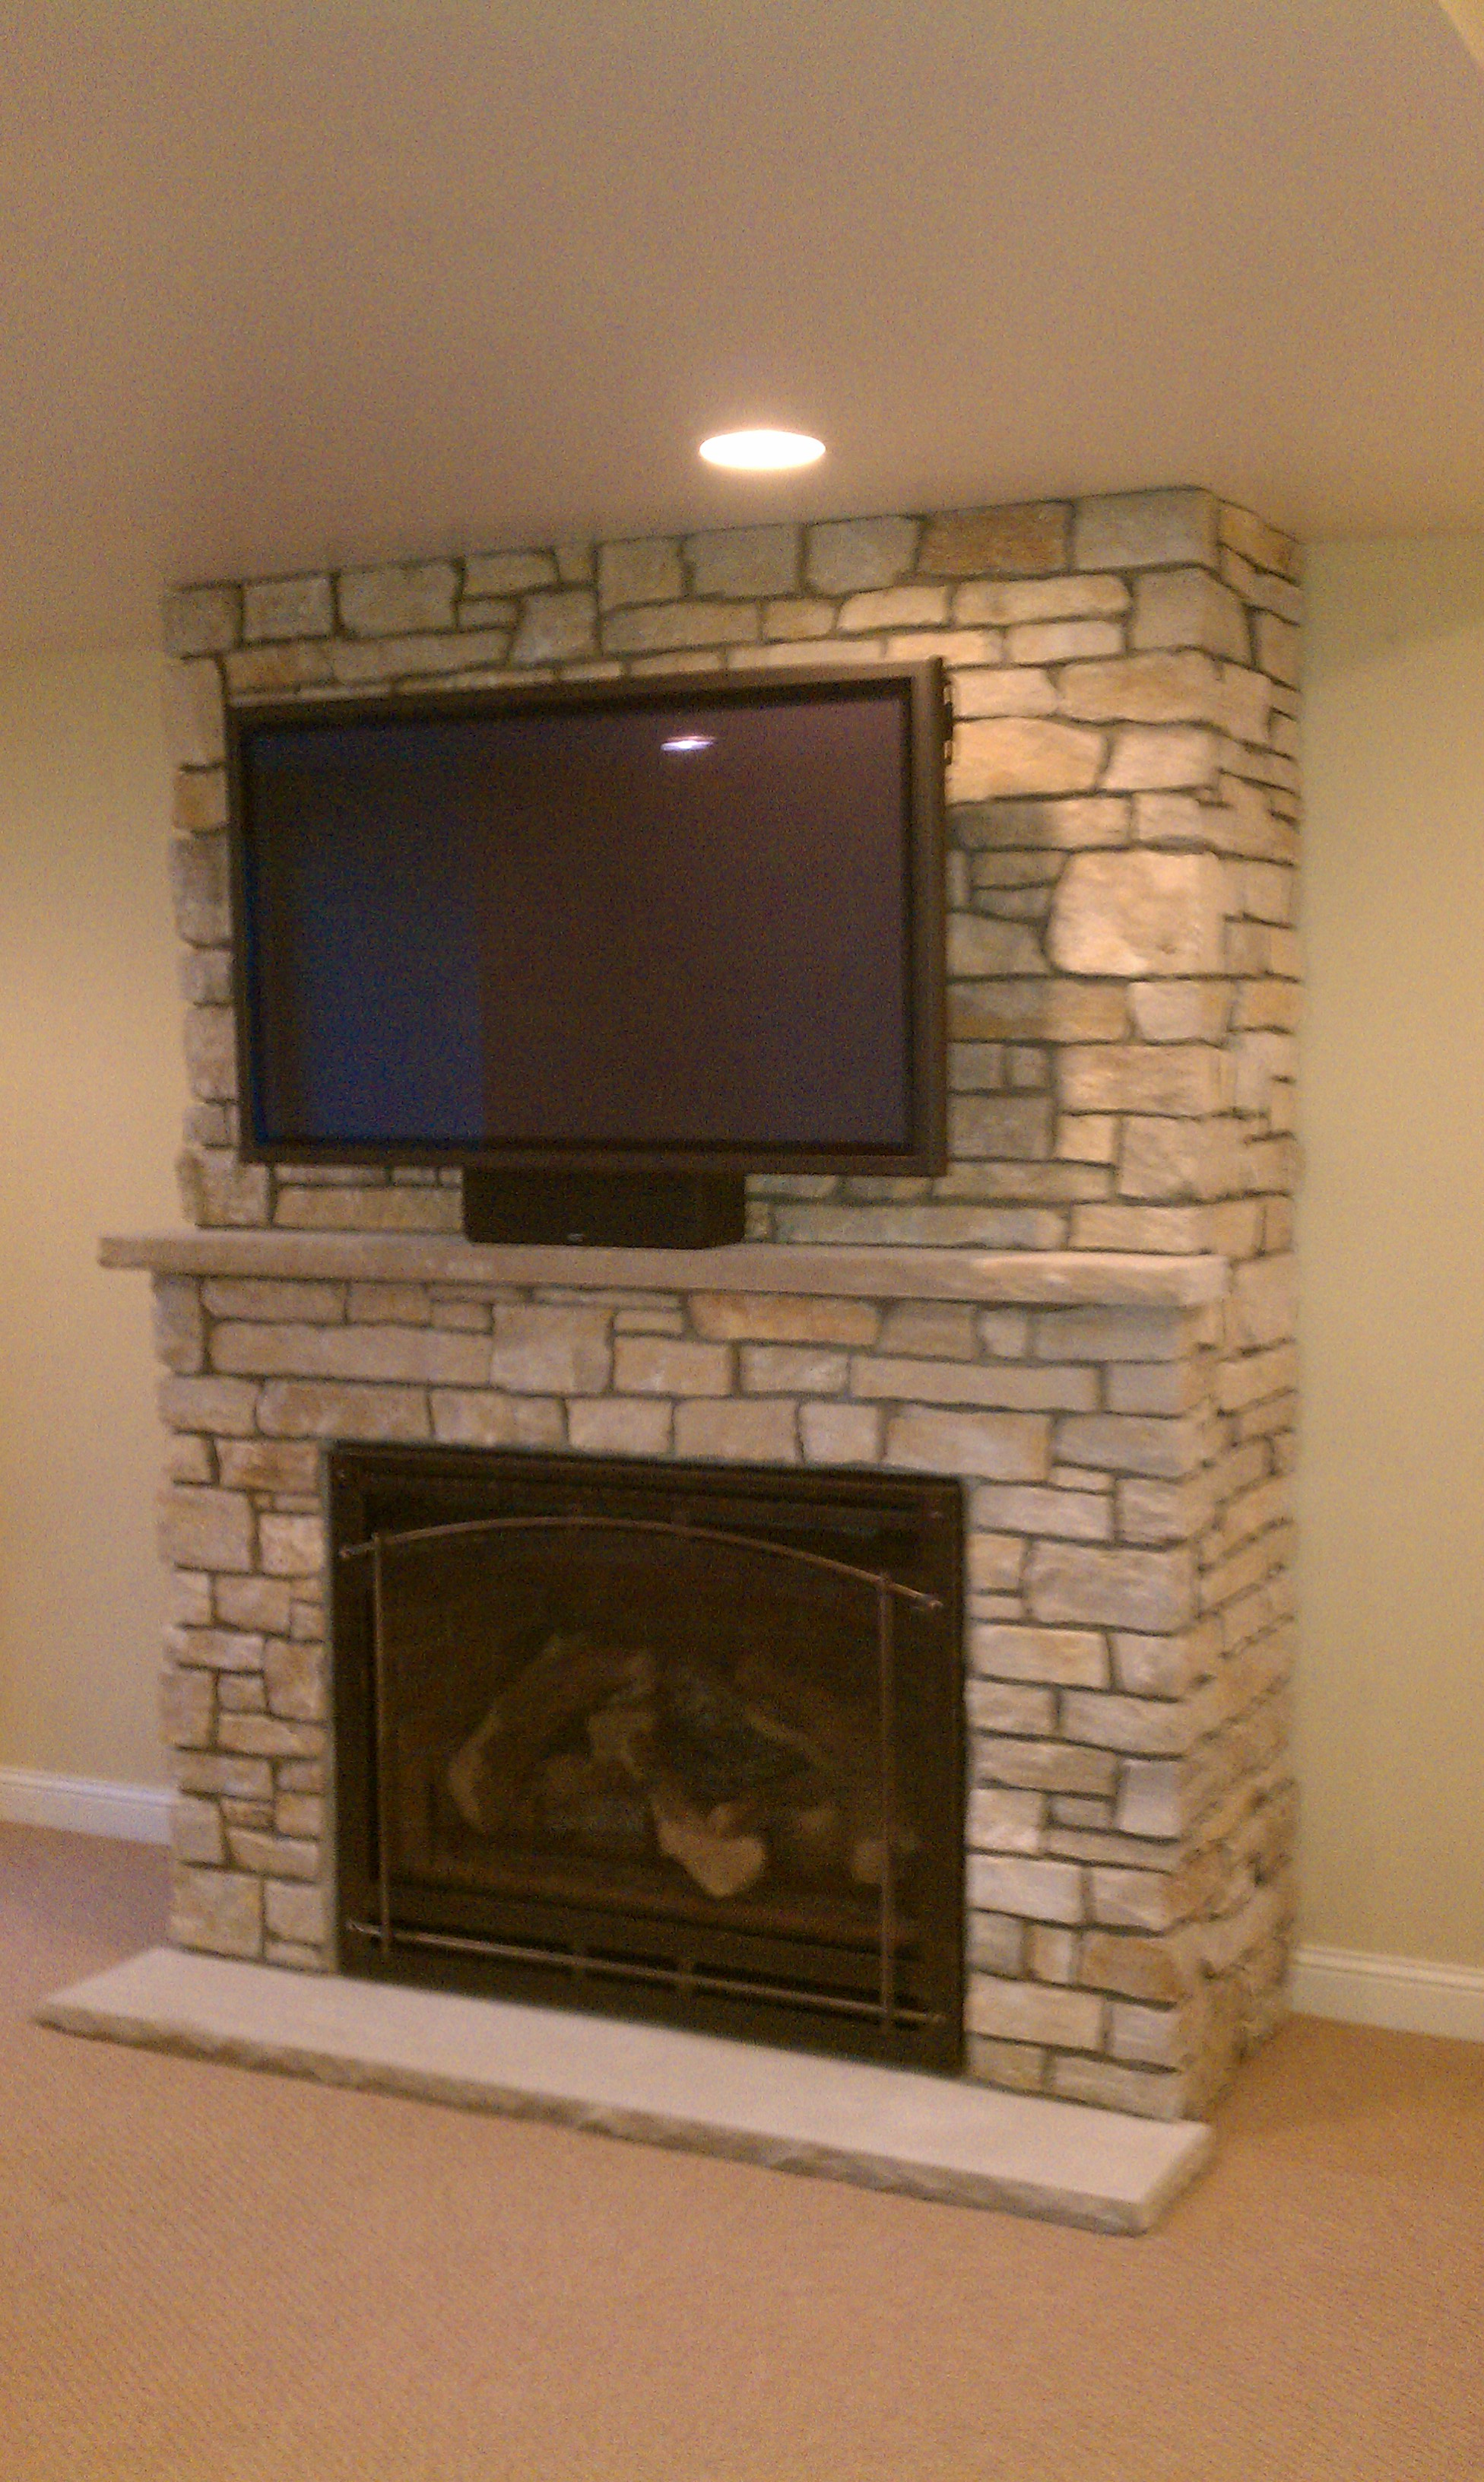 recessed lighting and interior paint color with stone fireplace ideas plus tv over fireplace also carpet flooring for beautiful modern living room elegant fireplace ideas covering brick fireplace with